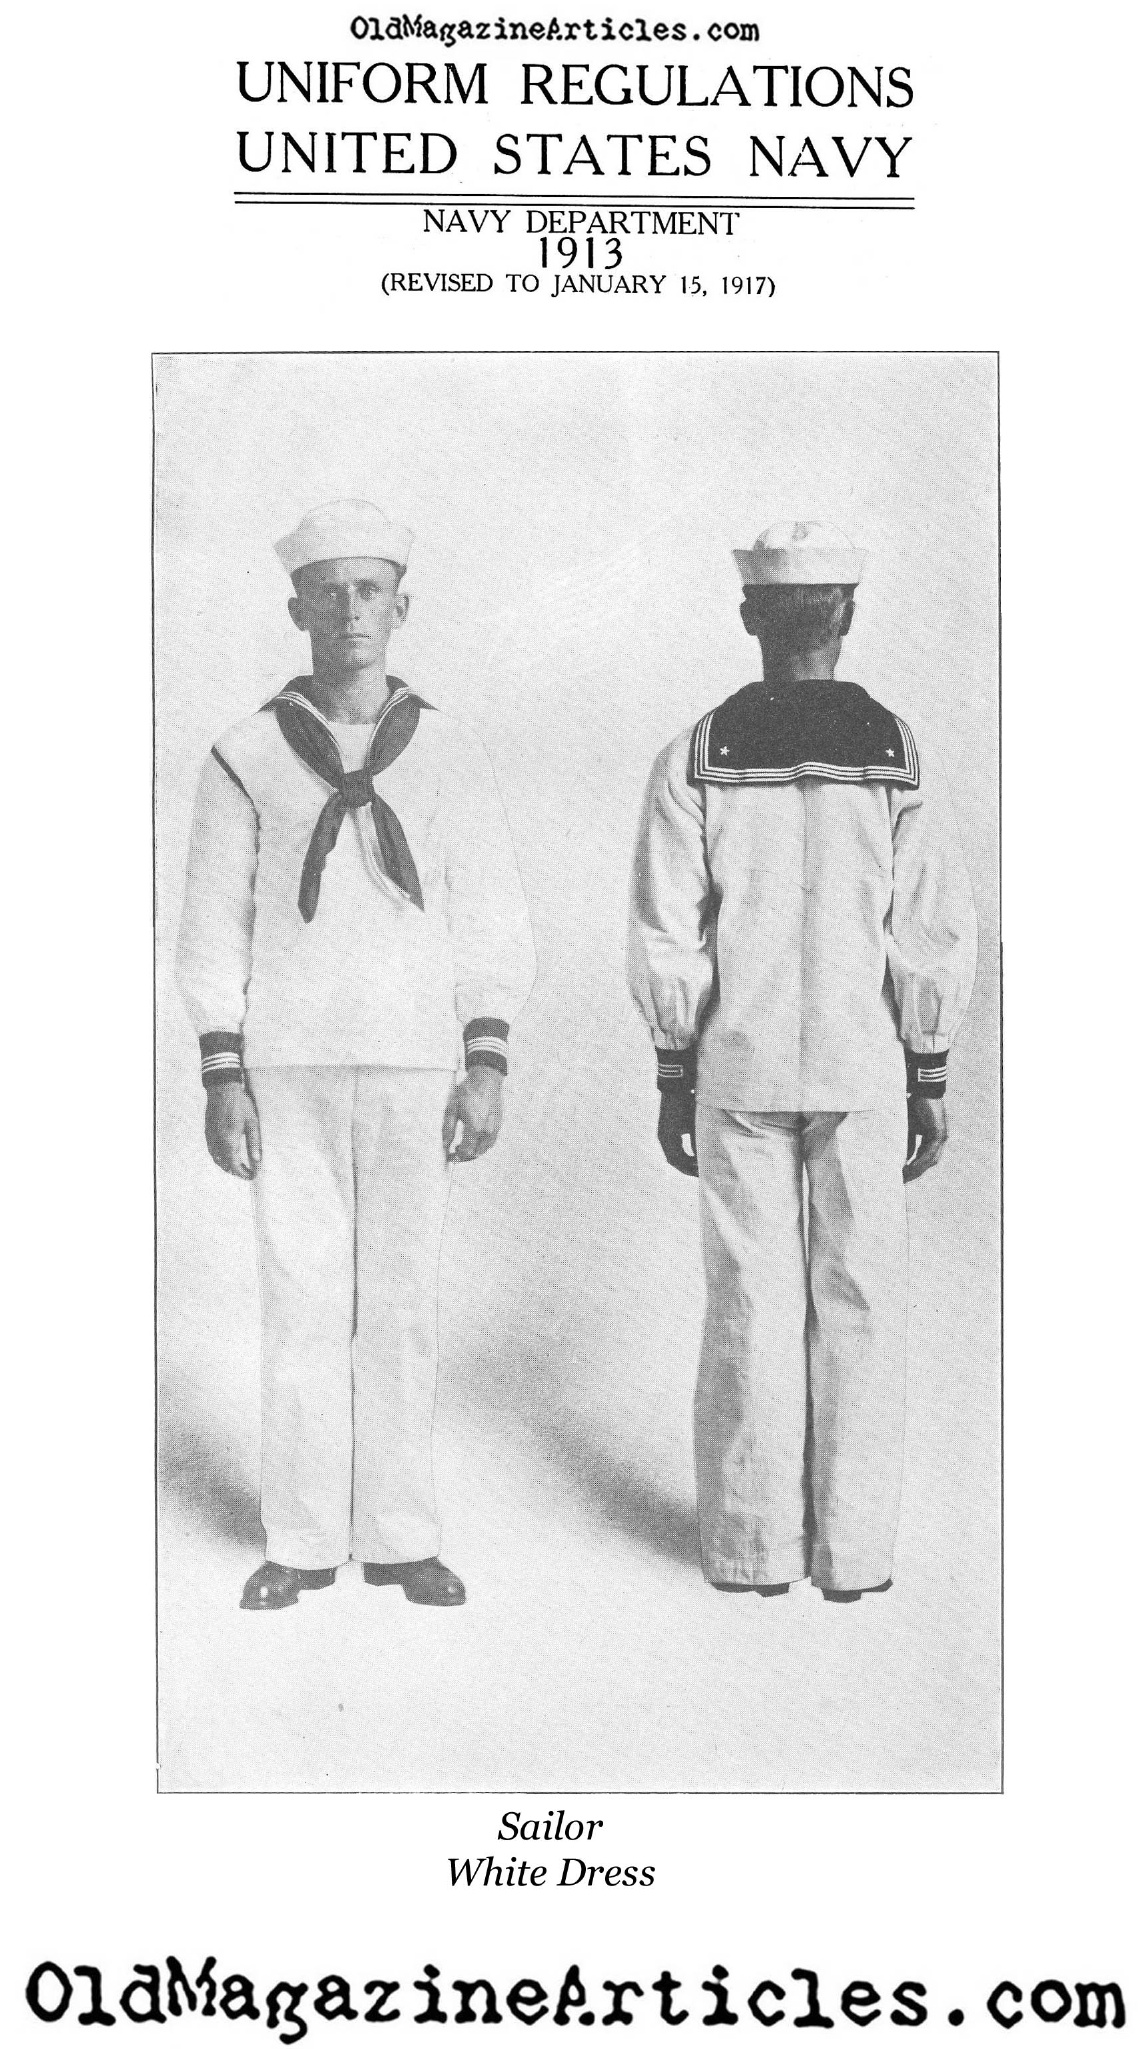 Dress White Uniform: U.S. Sailor (Navy Department, 1917)